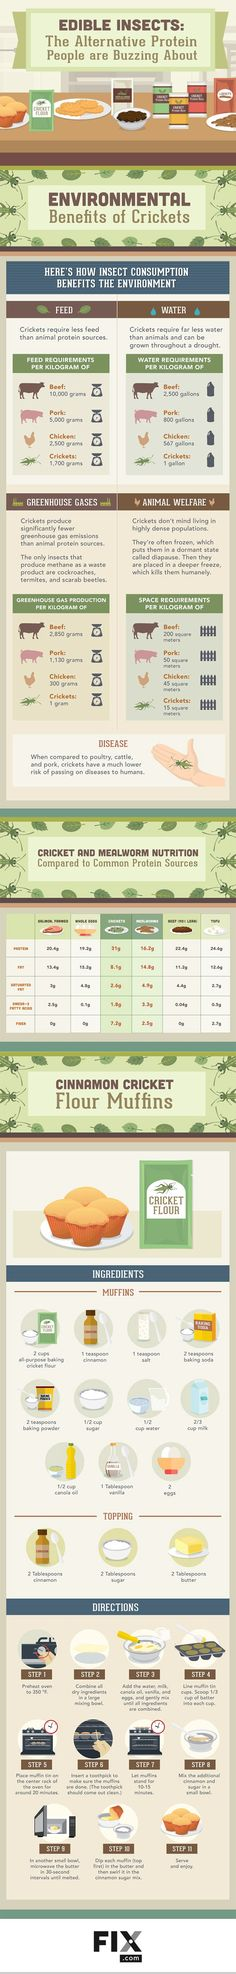 Edible Insects:The Alternative Protein People are Buzzing About – Medium